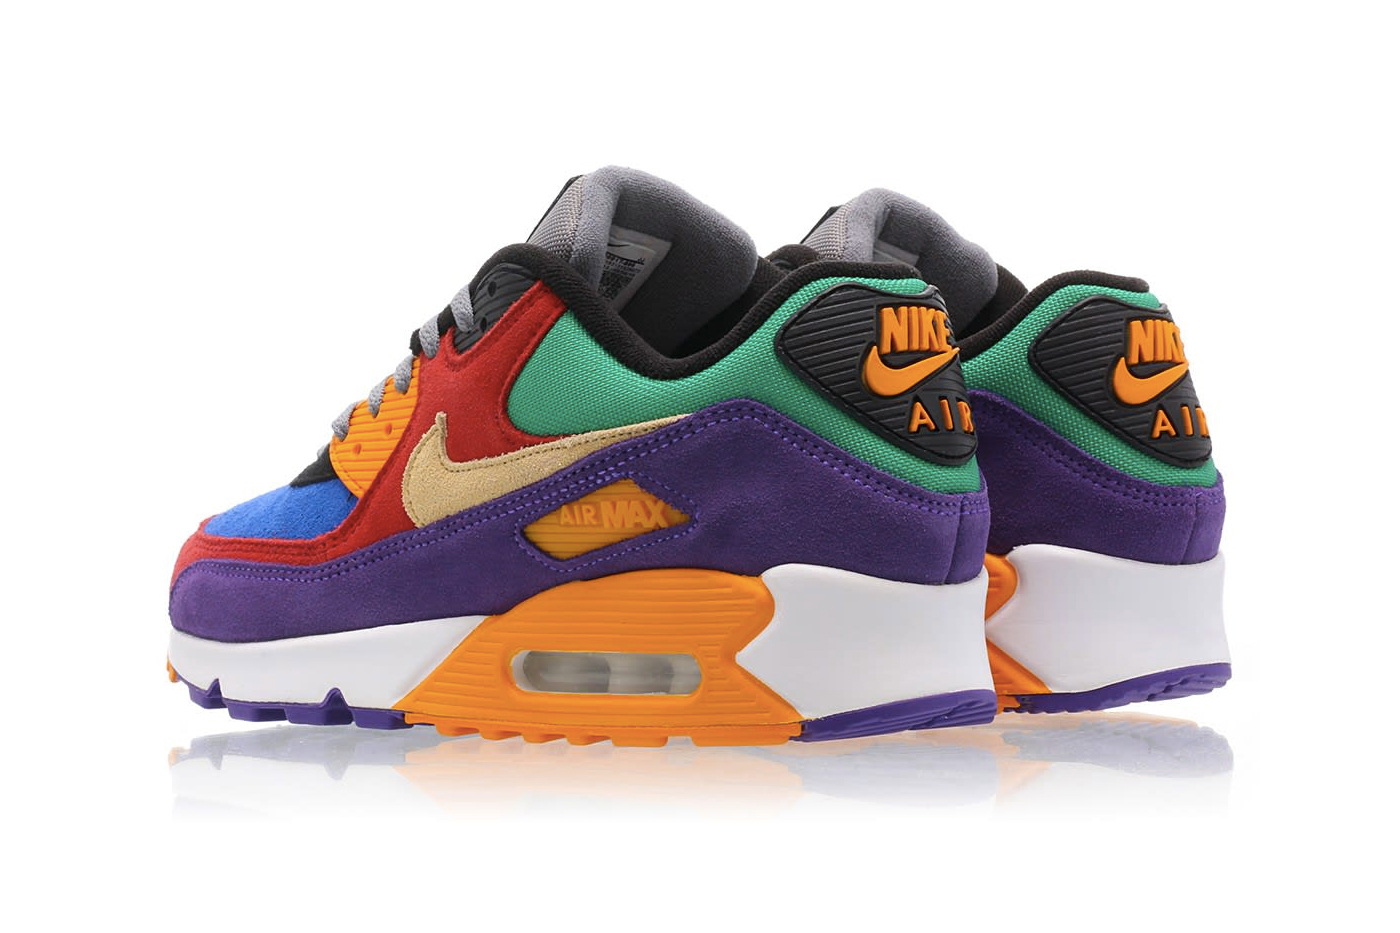 Nike Air Max Shoes & Clothing | Jimmy Jazz